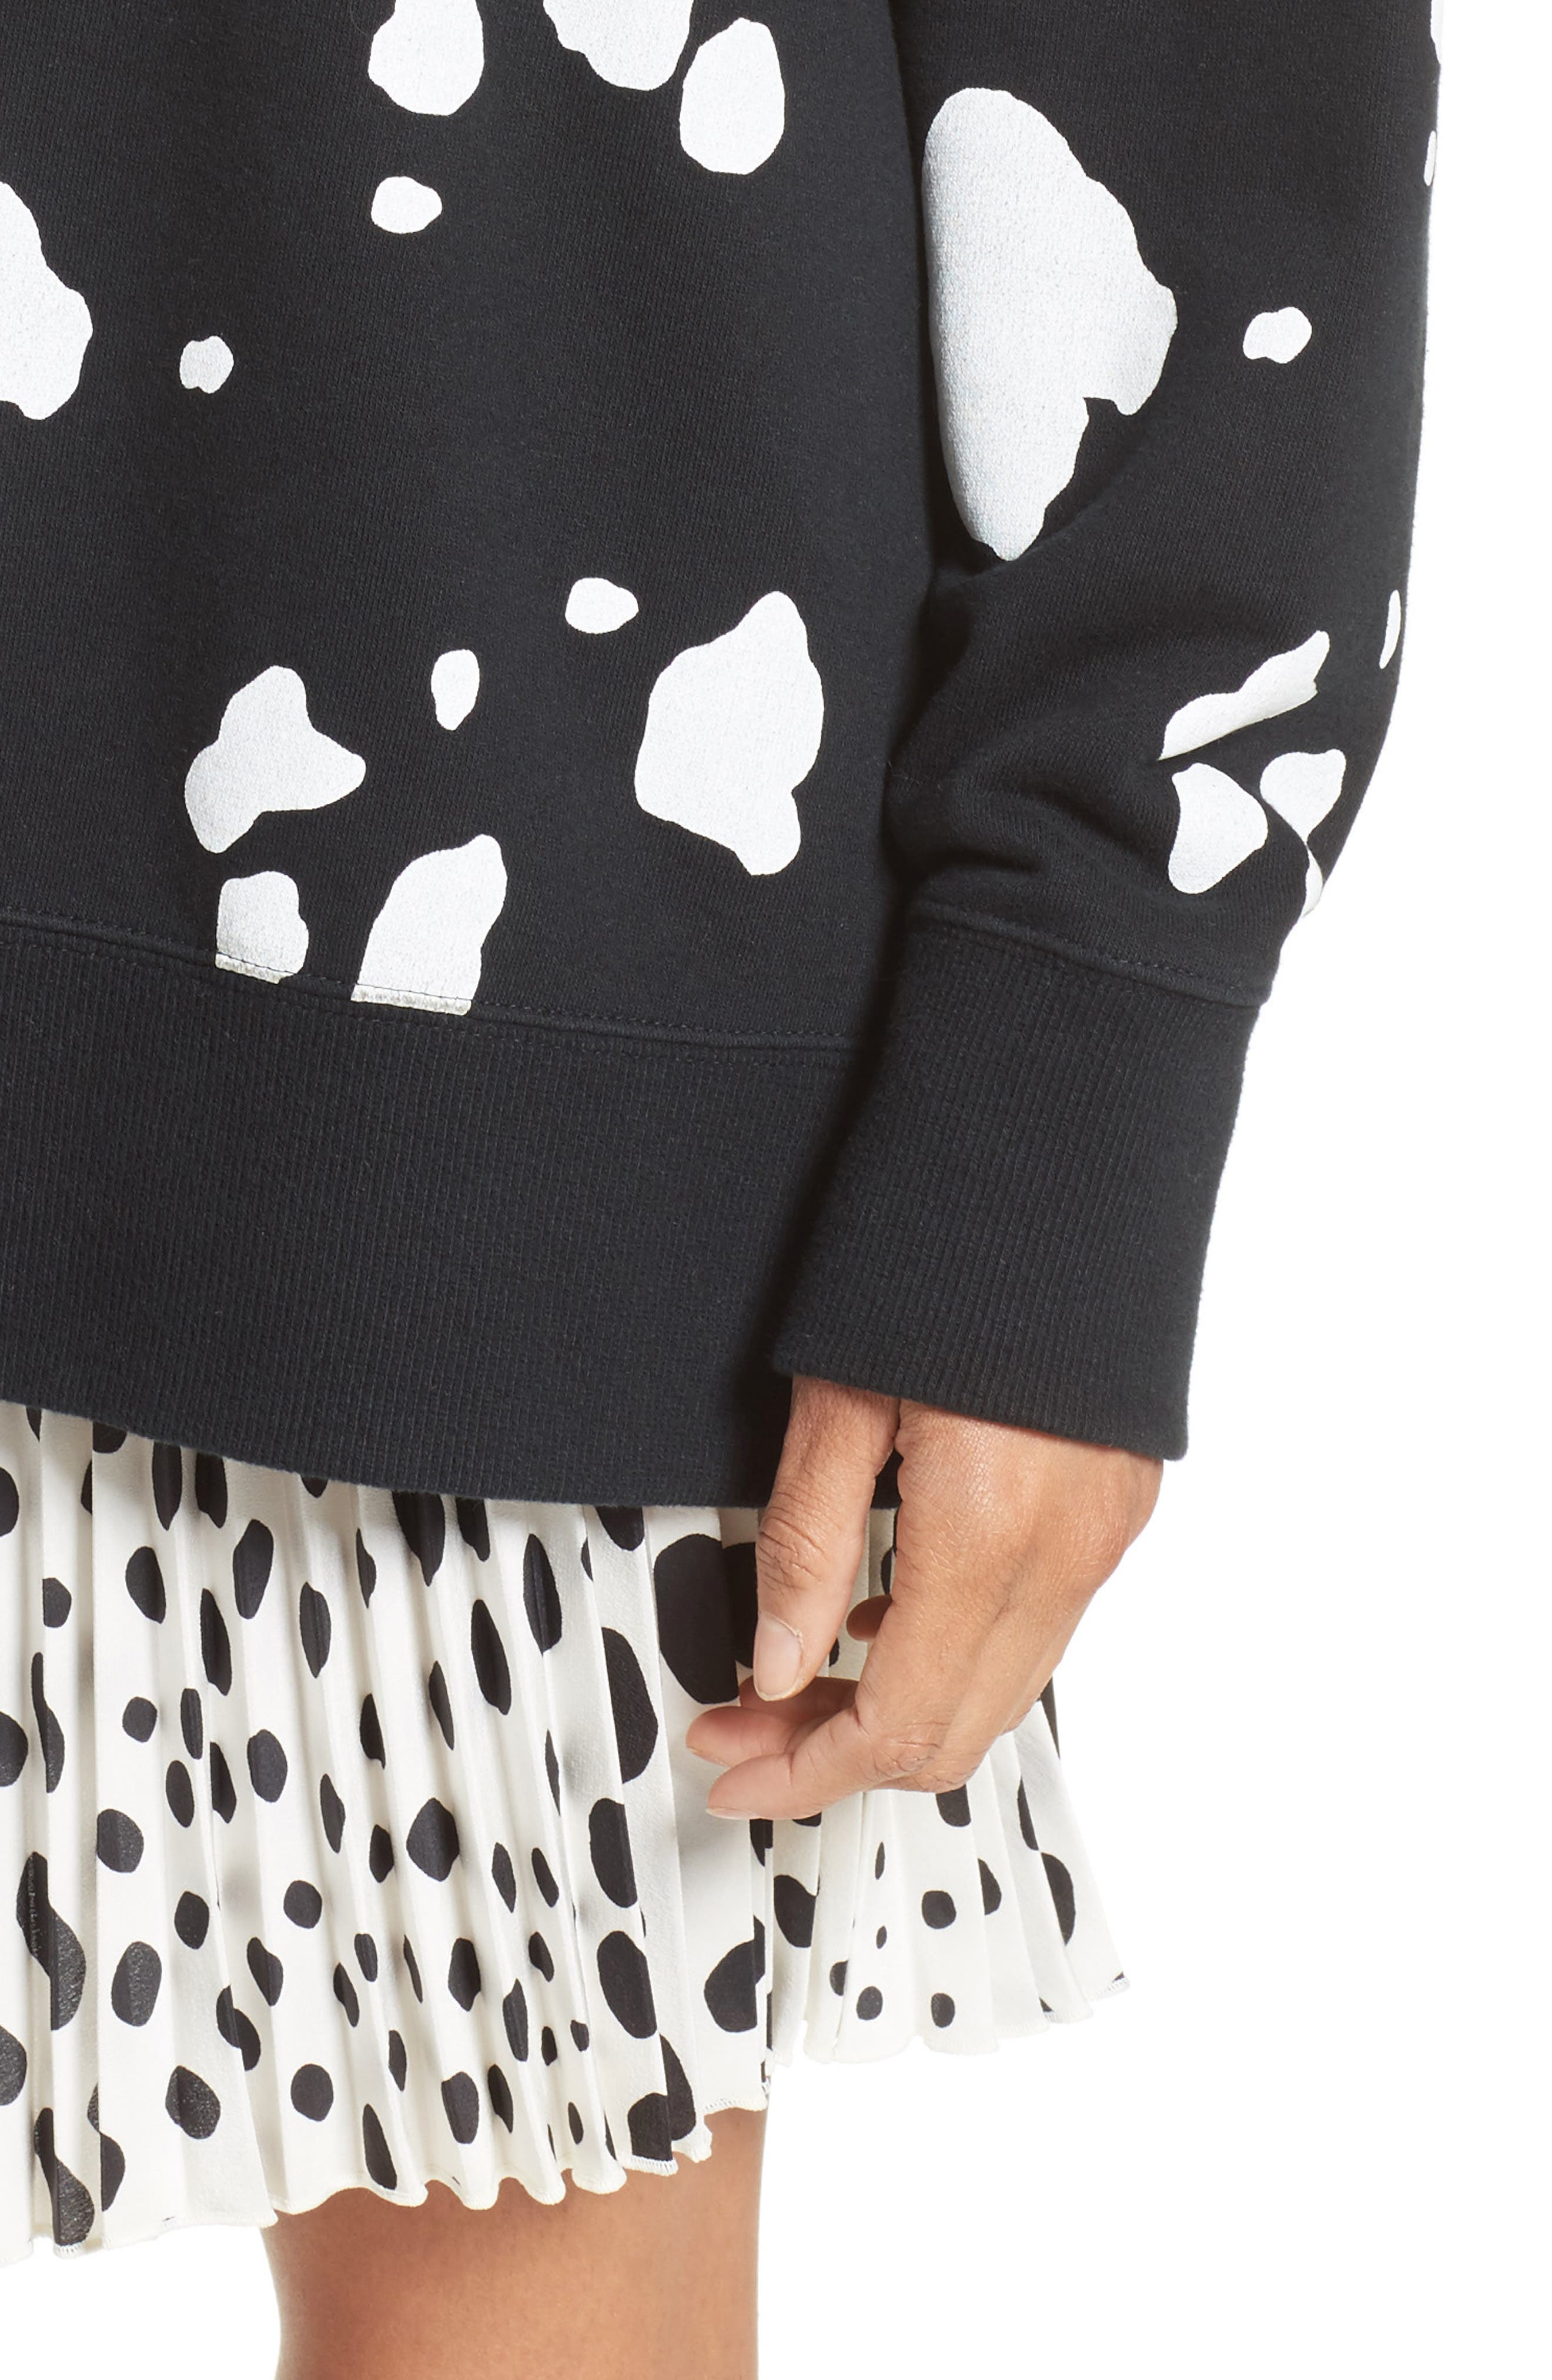 Dalmatian Print Sweatshirt,                             Alternate thumbnail 8, color,                             Black Multi